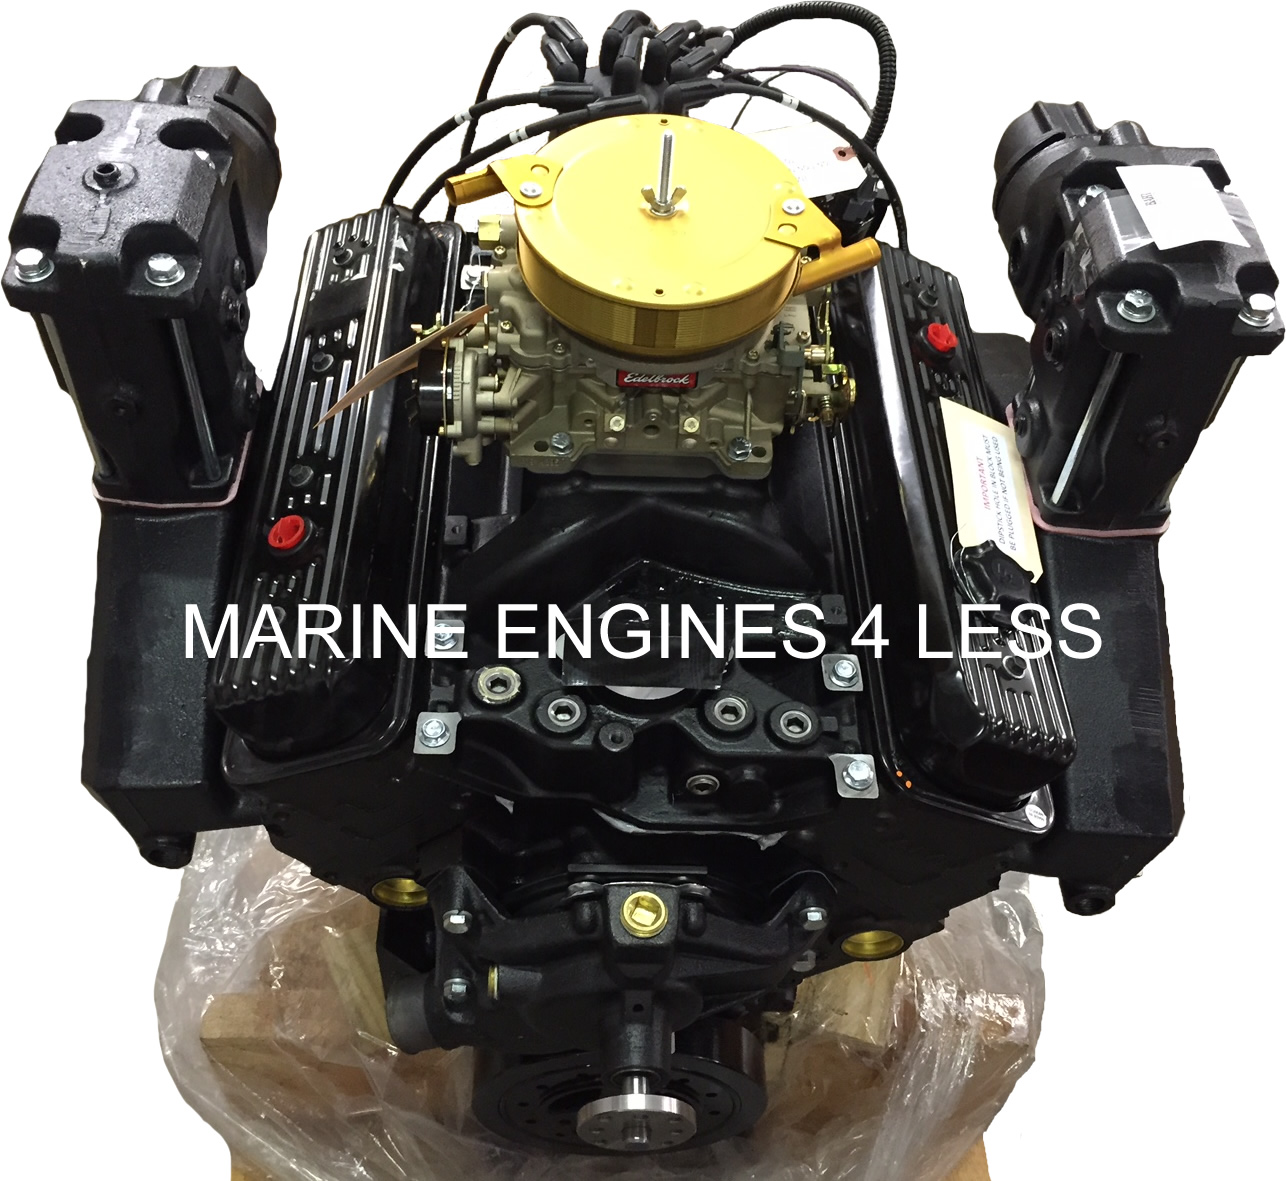 Remanufactured 5 7L Vortec Marine Base Engine with Exhaust (replaces years  1996-present)